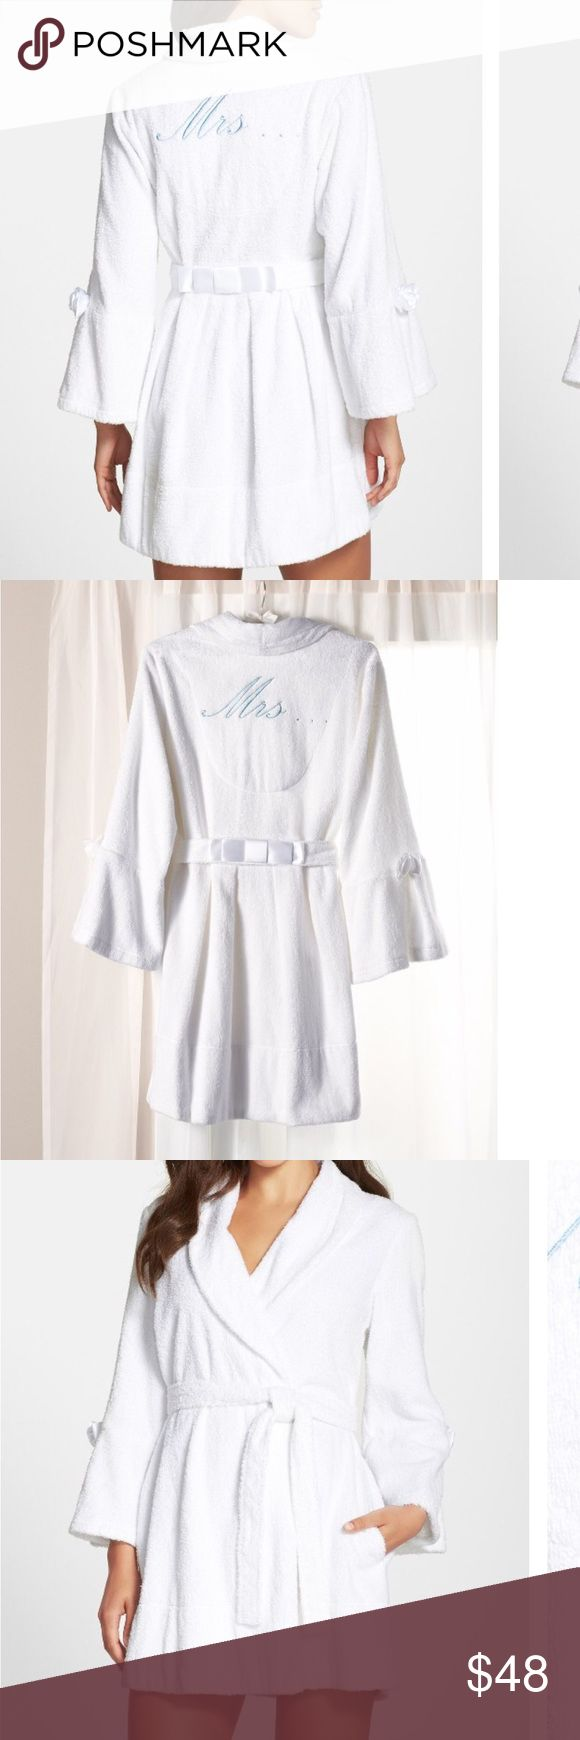 """🎉SALE🎉 Betsey Johnson Blue Mrs. Embroidered robe Embroidered hearts surround the words, 'I do' inside a plush terry robe accented with ribbon bows on the belled sleeves and on the back sash tie. An embroidered 'Mrs.' finishes the back of the honeymoon-ready style. 33"""" length (size Medium). Front tie closure; interior anchor tie. On-seam pockets. Attached belt. 100% cotton; machine wash cold, tumble dry low. Betsey Johnson Intimates & Sleepwear Robes"""